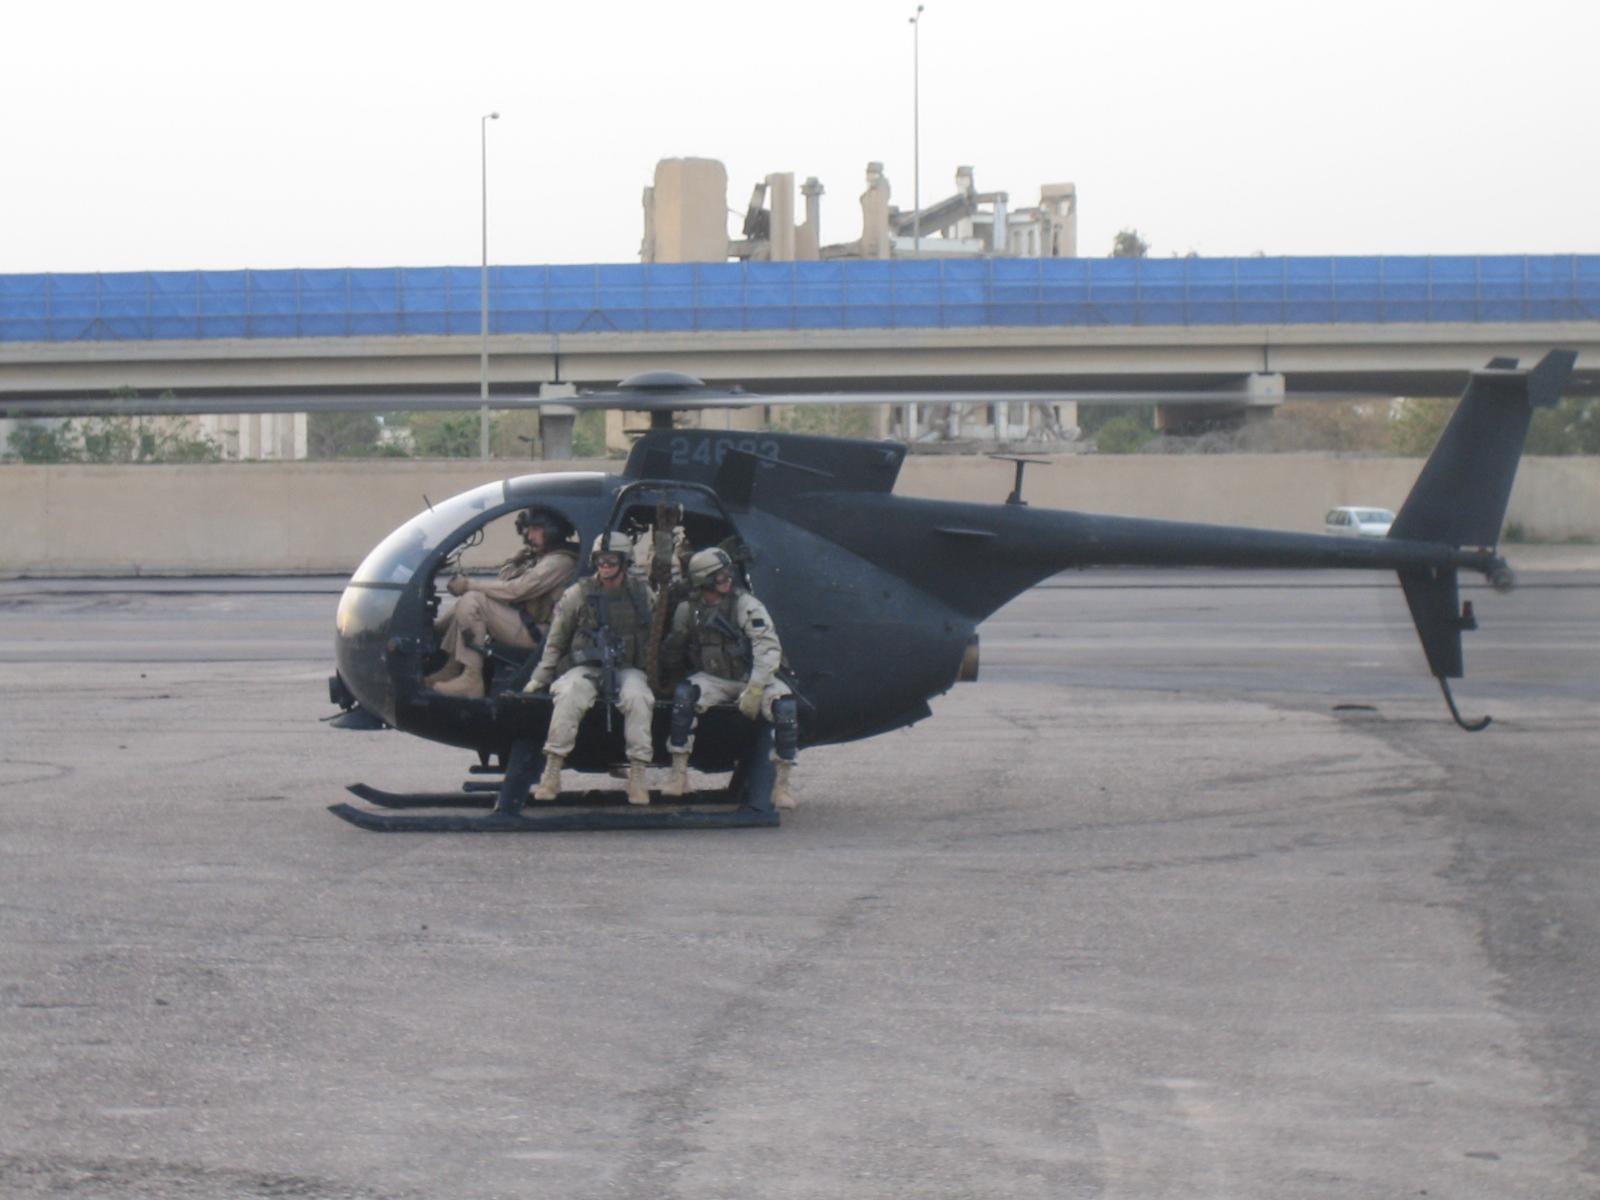 blackhawk for sale helicopter with File Oh 6 Cayuse on 6m Bf Austria Air Force Sikorsky S 70a Black Hawk further Airi landing also Yf 23 Black Widow Tactical Fighter moreover File Israeli Air Force  UH 60 Black Hawk likewise File Sikorsky S 70 Blackhawk  Hkp 16A  161229 04  8364671659.